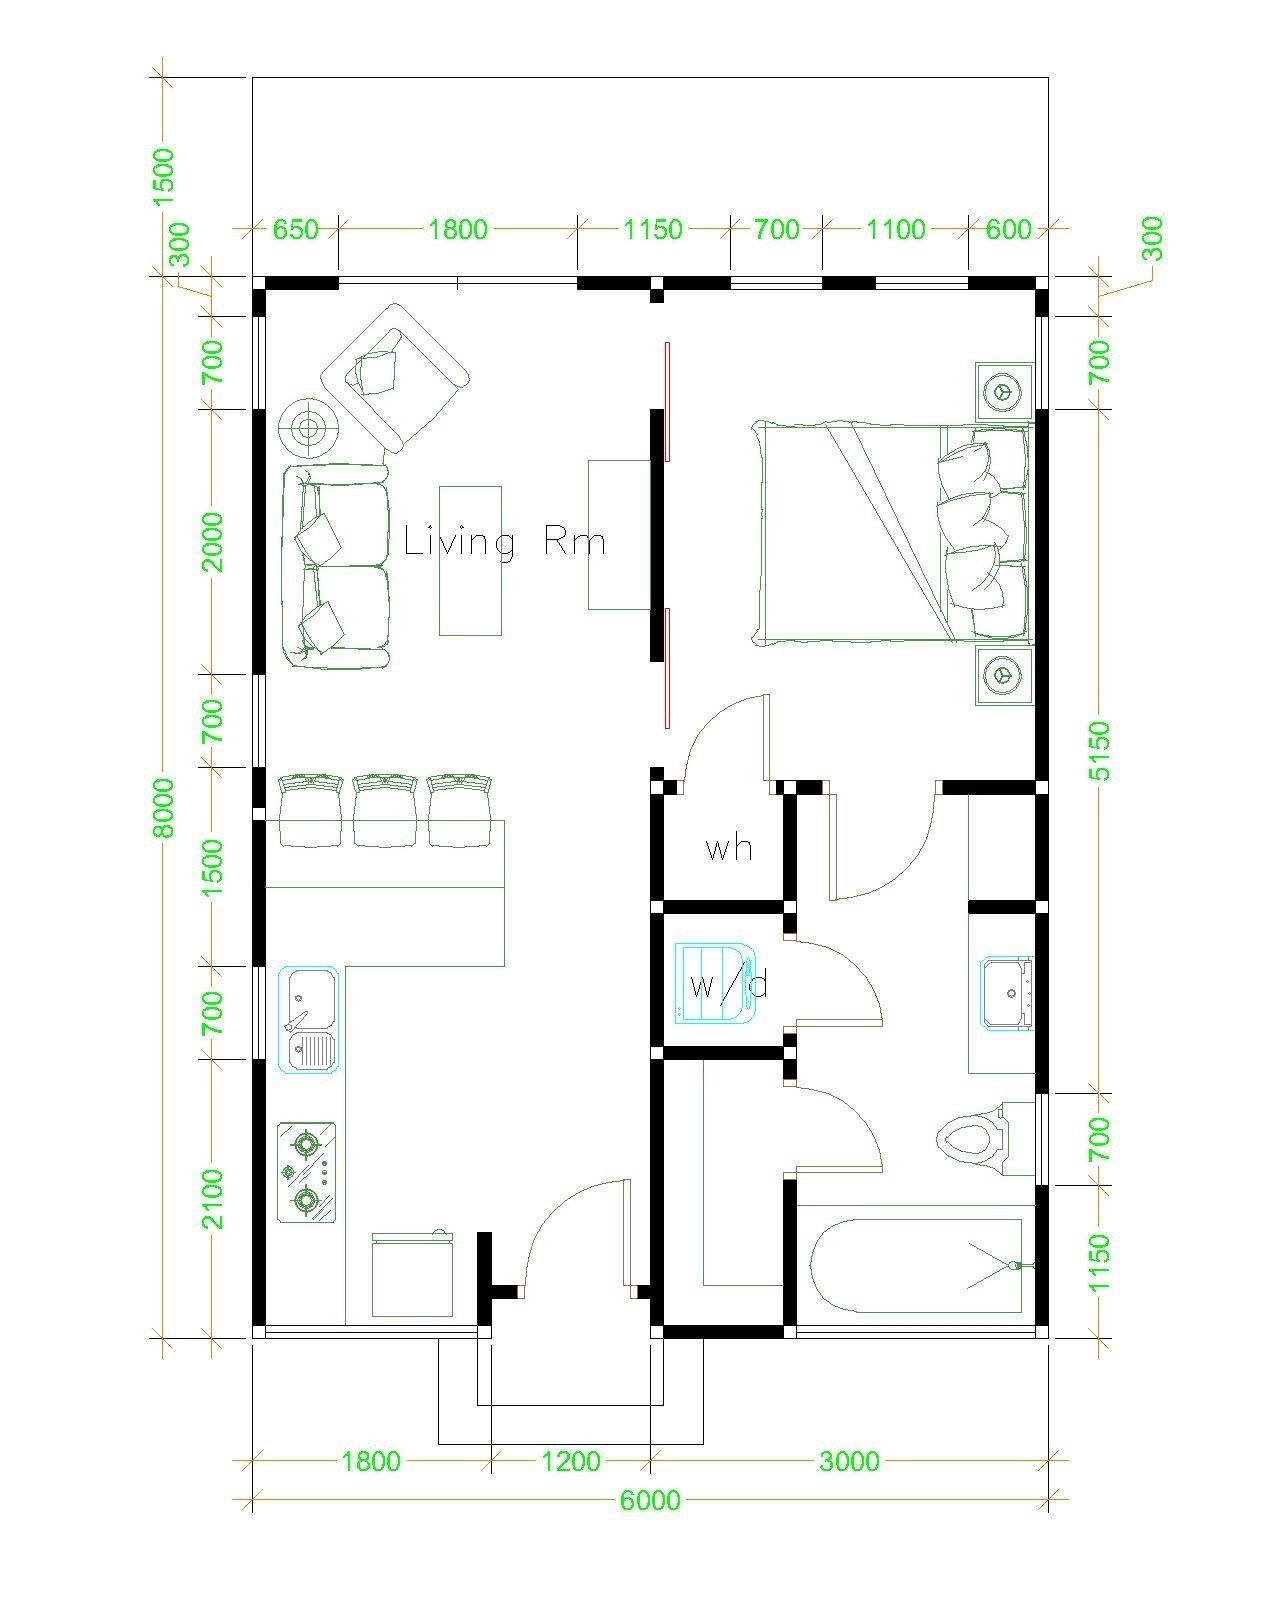 Studio House Plans 6x8 Shed Roof Free Download Tiny House Design 3d Tiny House Floor Plans Tiny House Design Tiny House Plans